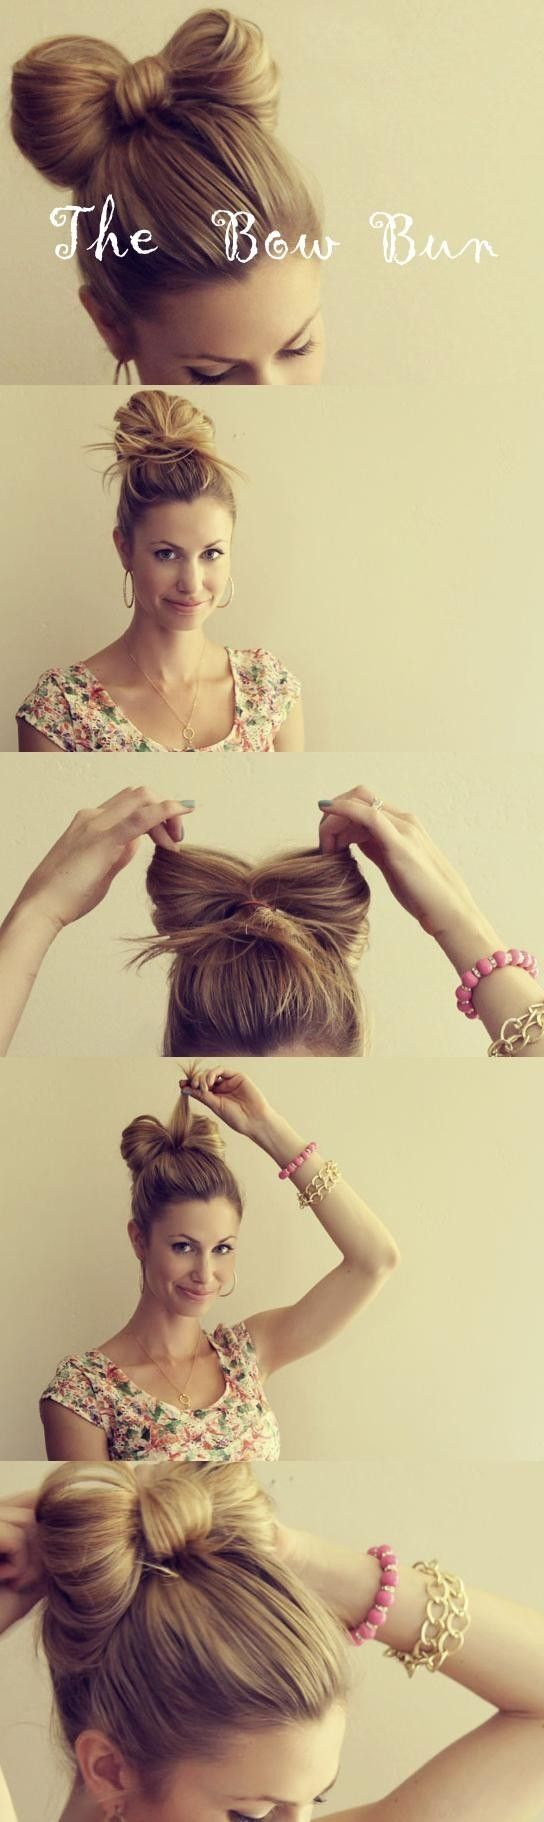 Lovely updo hair styles for long hair. This bow bun is so